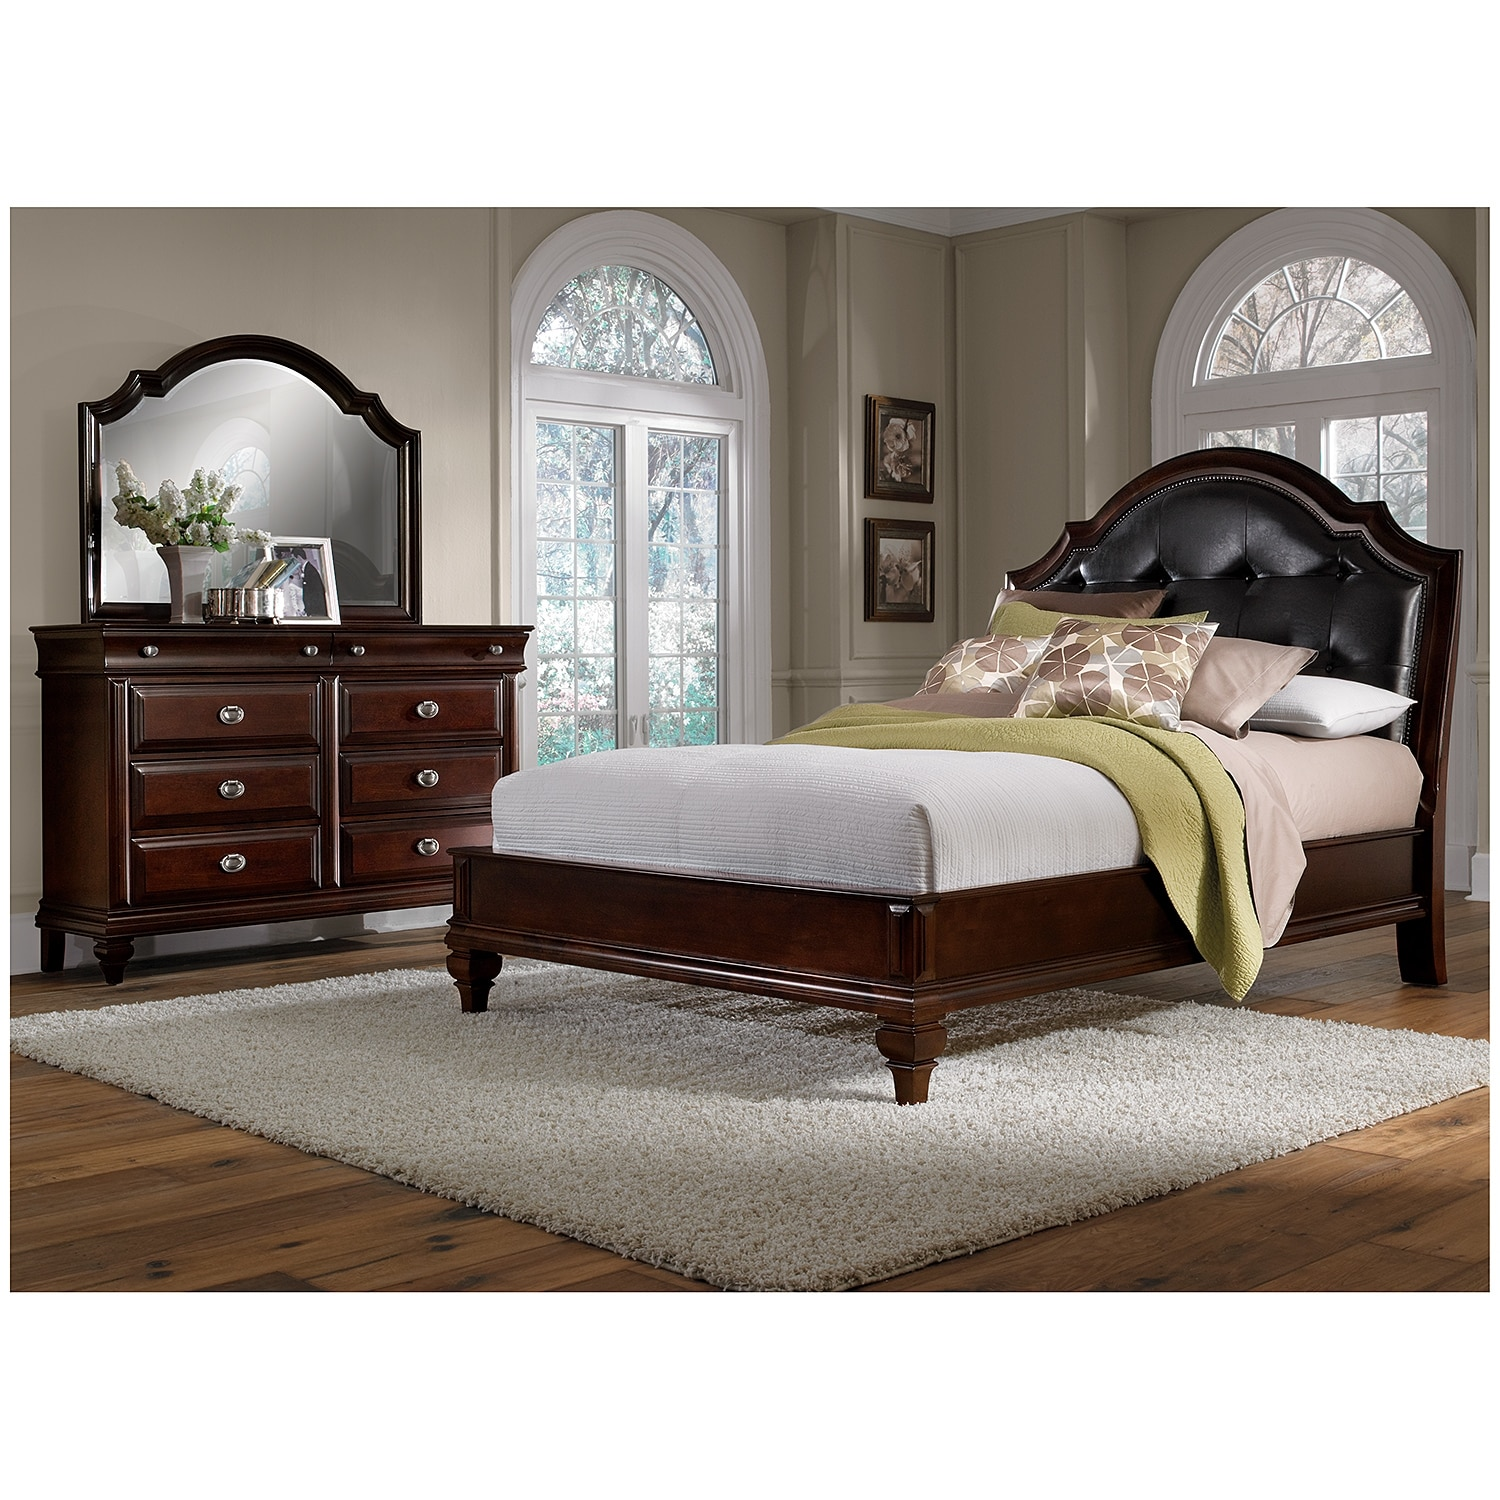 Bedroom Furniture Manhattan 5 Piece Queen Bedroom Set Cherry